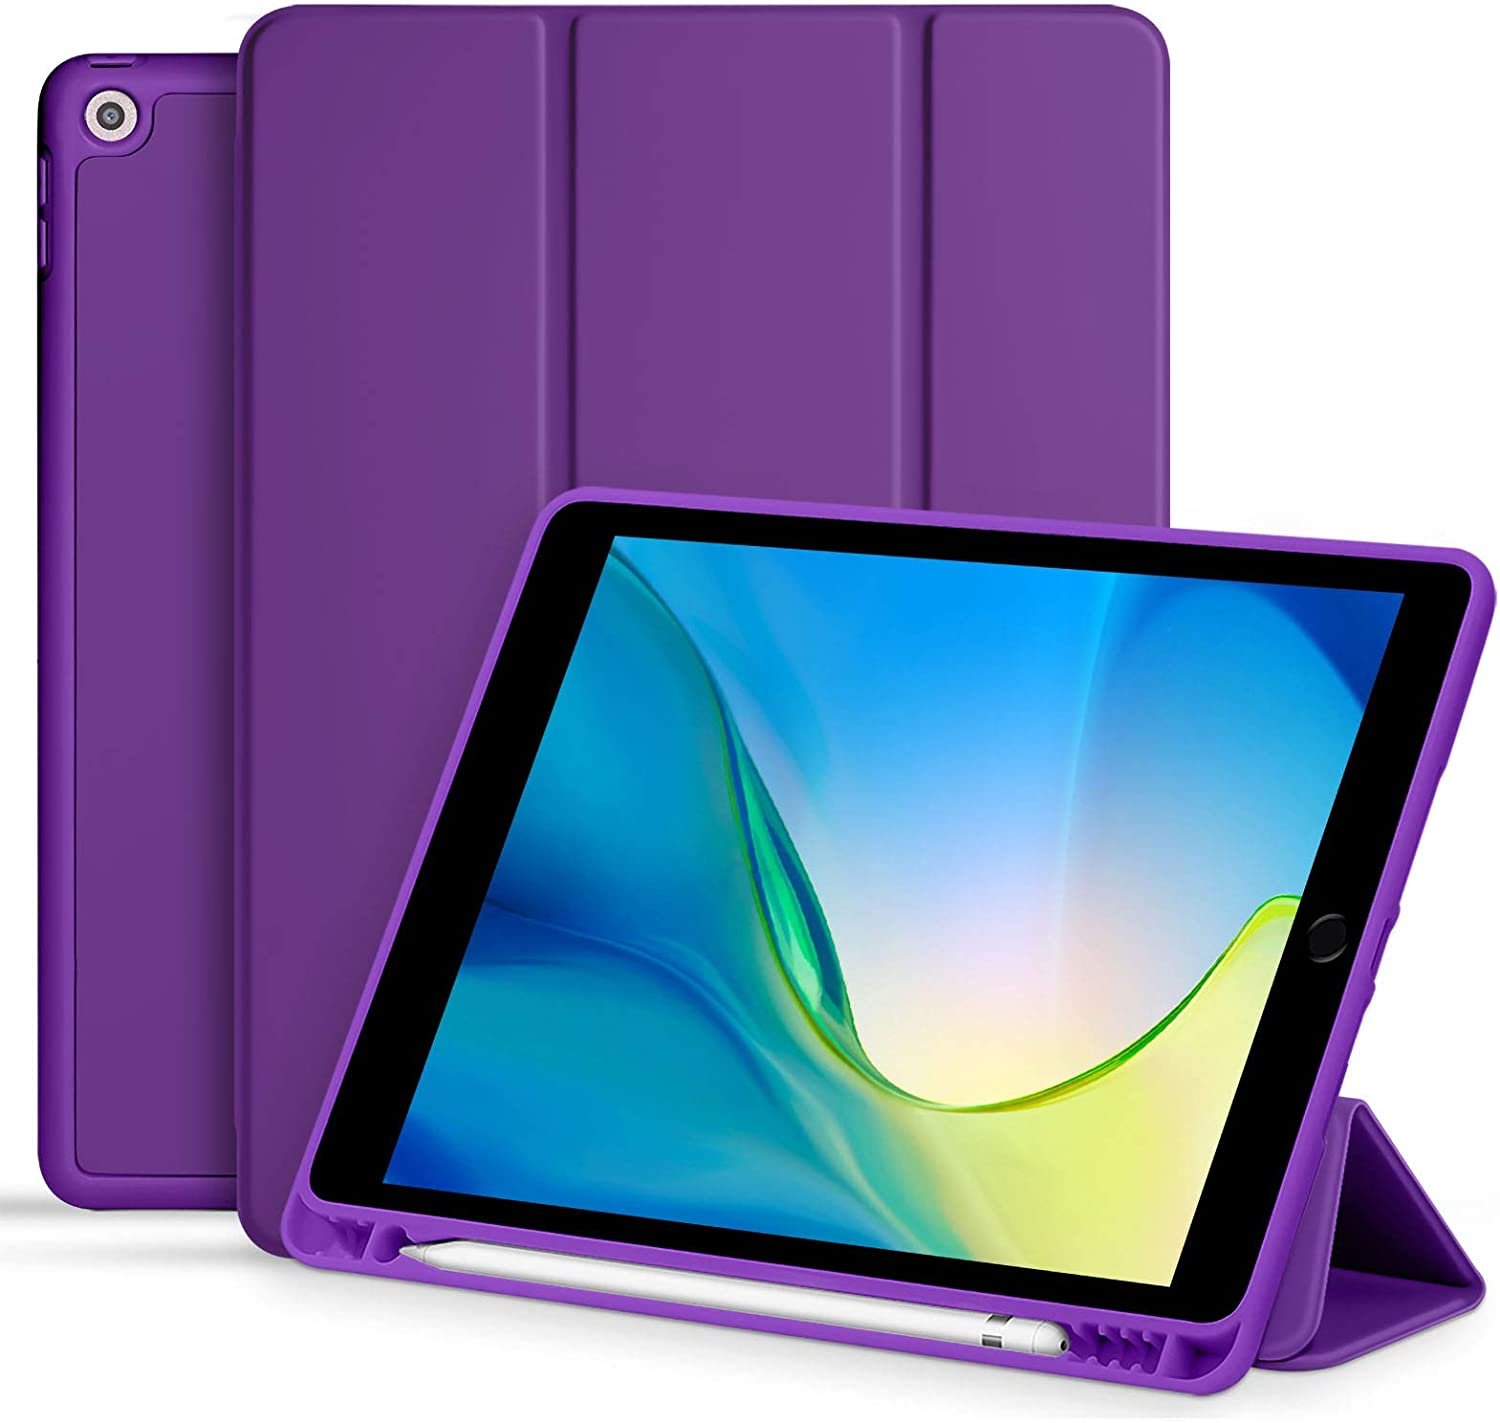 Akkerds Case for iPad 10.2 2020 iPad 8th Generation/2019 iPad 7th Generation with Pencil Holder, Premium Protective Case with Soft TPU Back, Auto Sleep/Wake Cover for iPad 8th/7th Gen, Purple